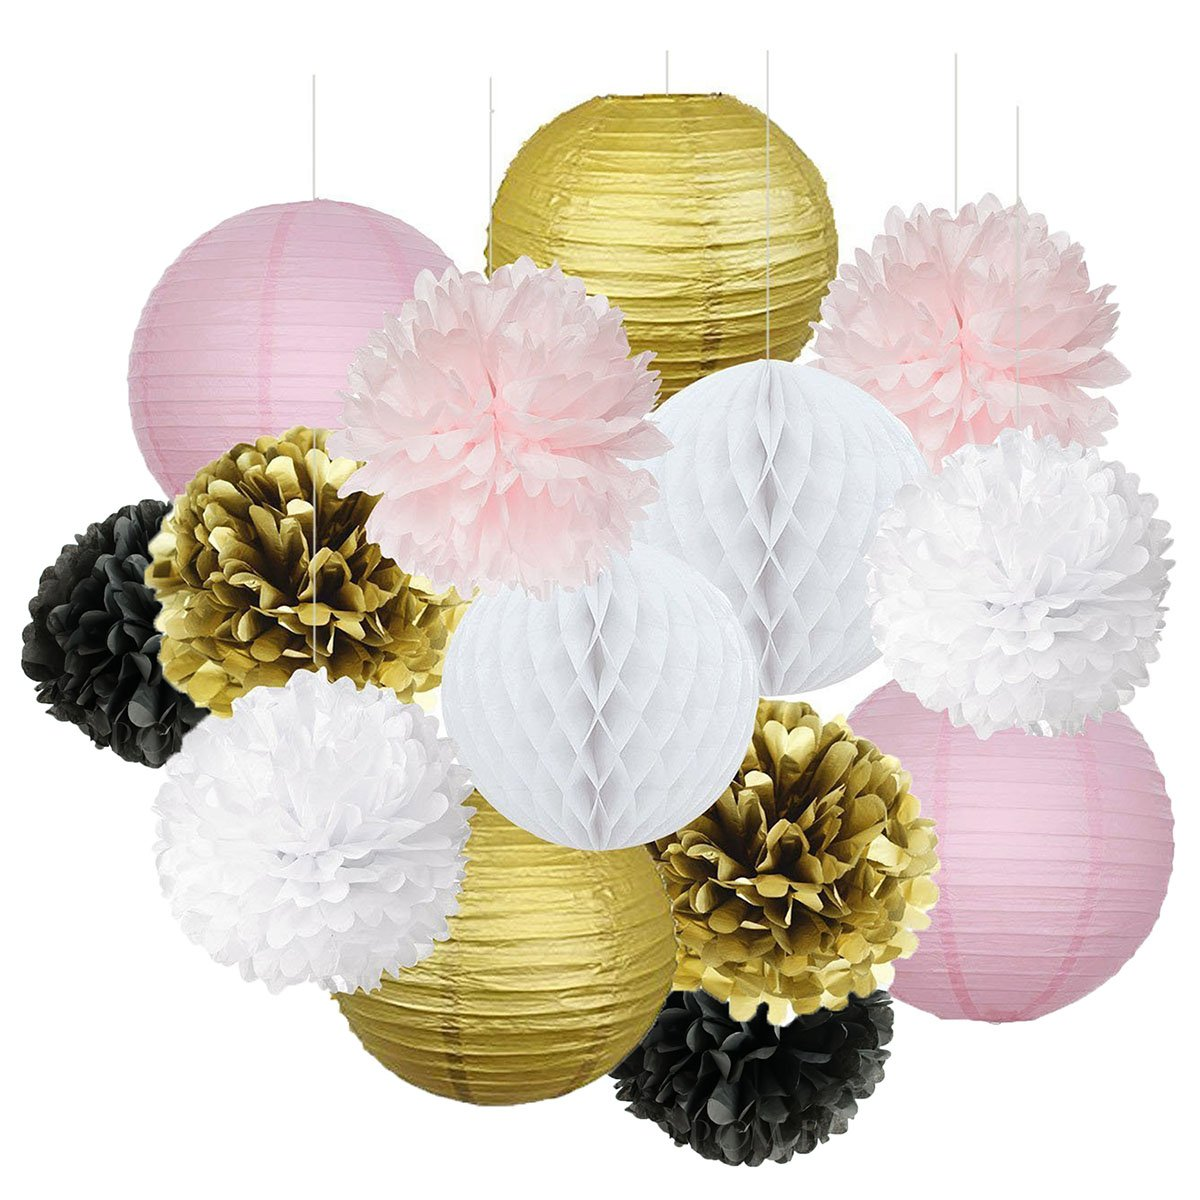 French/Parisian Birthday Party Ideas Pink Gold White Black Paris Party Decorations Tissue Paper Pom Pom Honeycomb Ball/Paper Lantern for Girls' Birthday Decorations Ooh La La Baby Shower Decorations by Furuix